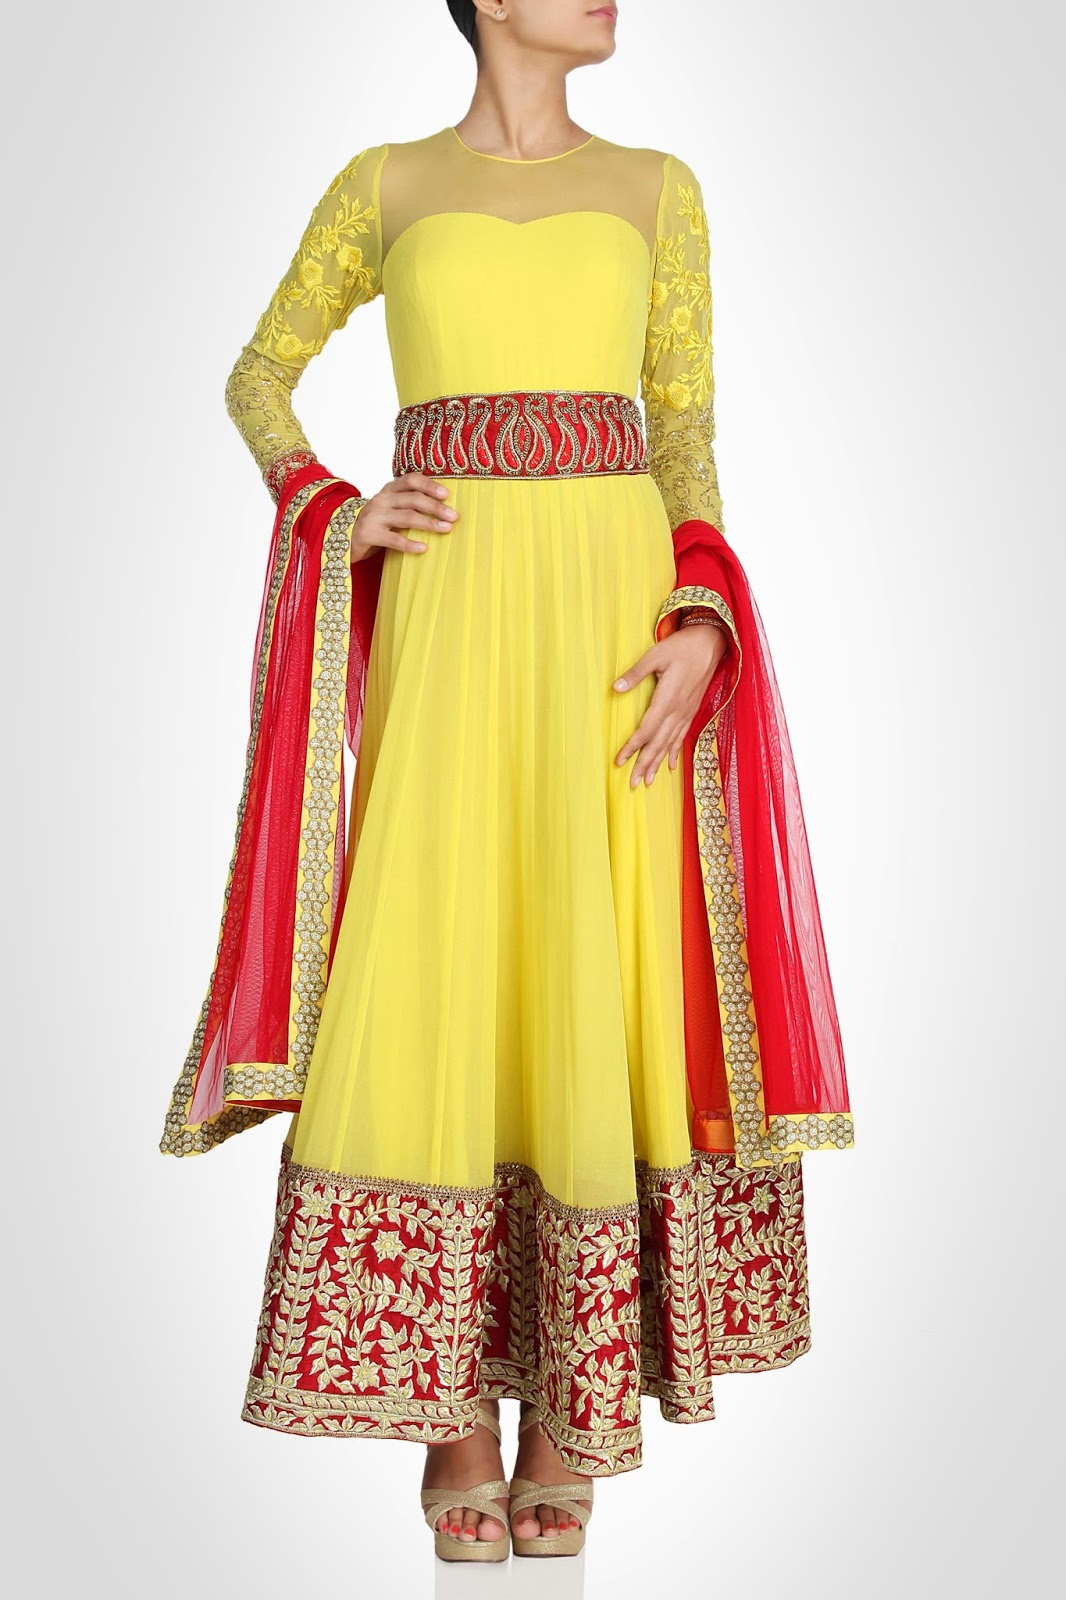 Buy Designer Dresses Online By Radhika Rahul Trend Fashion World Hamood